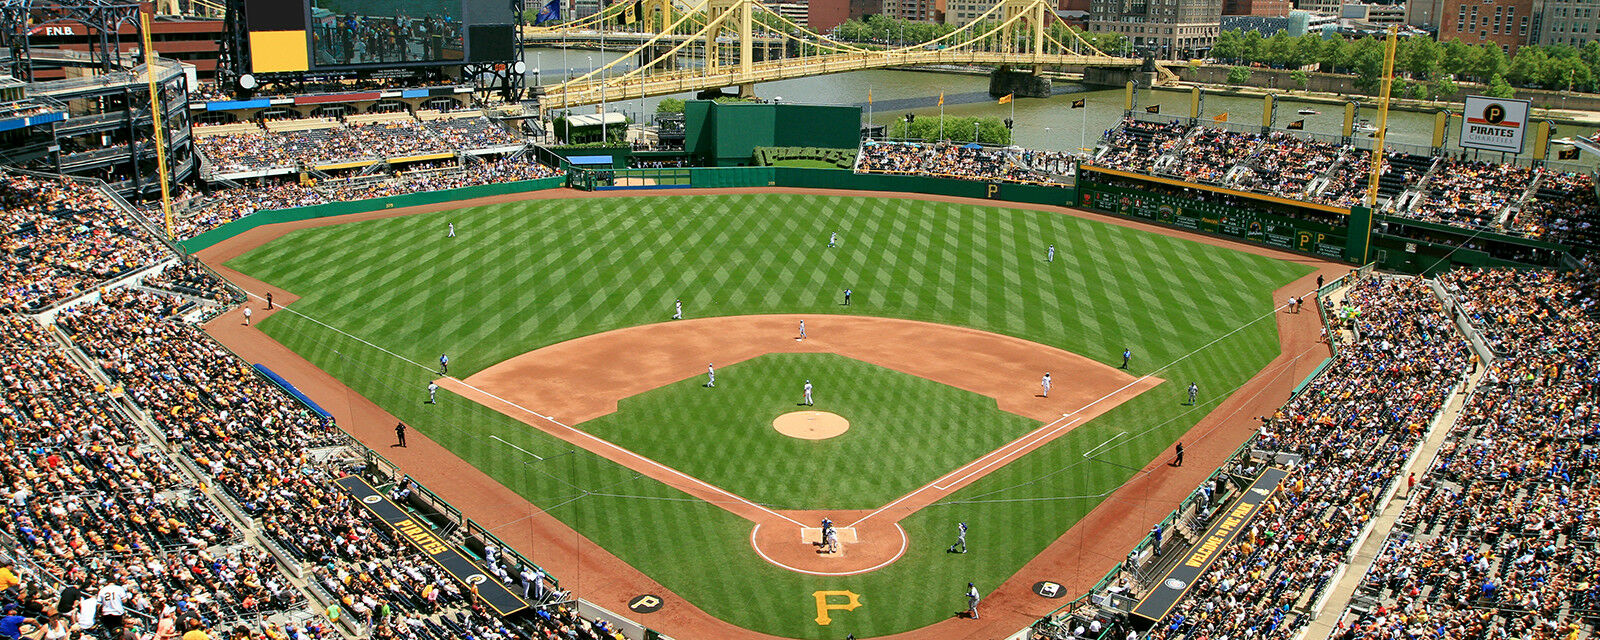 Philadelphia Phillies at Pittsburgh Pirates Spring Training